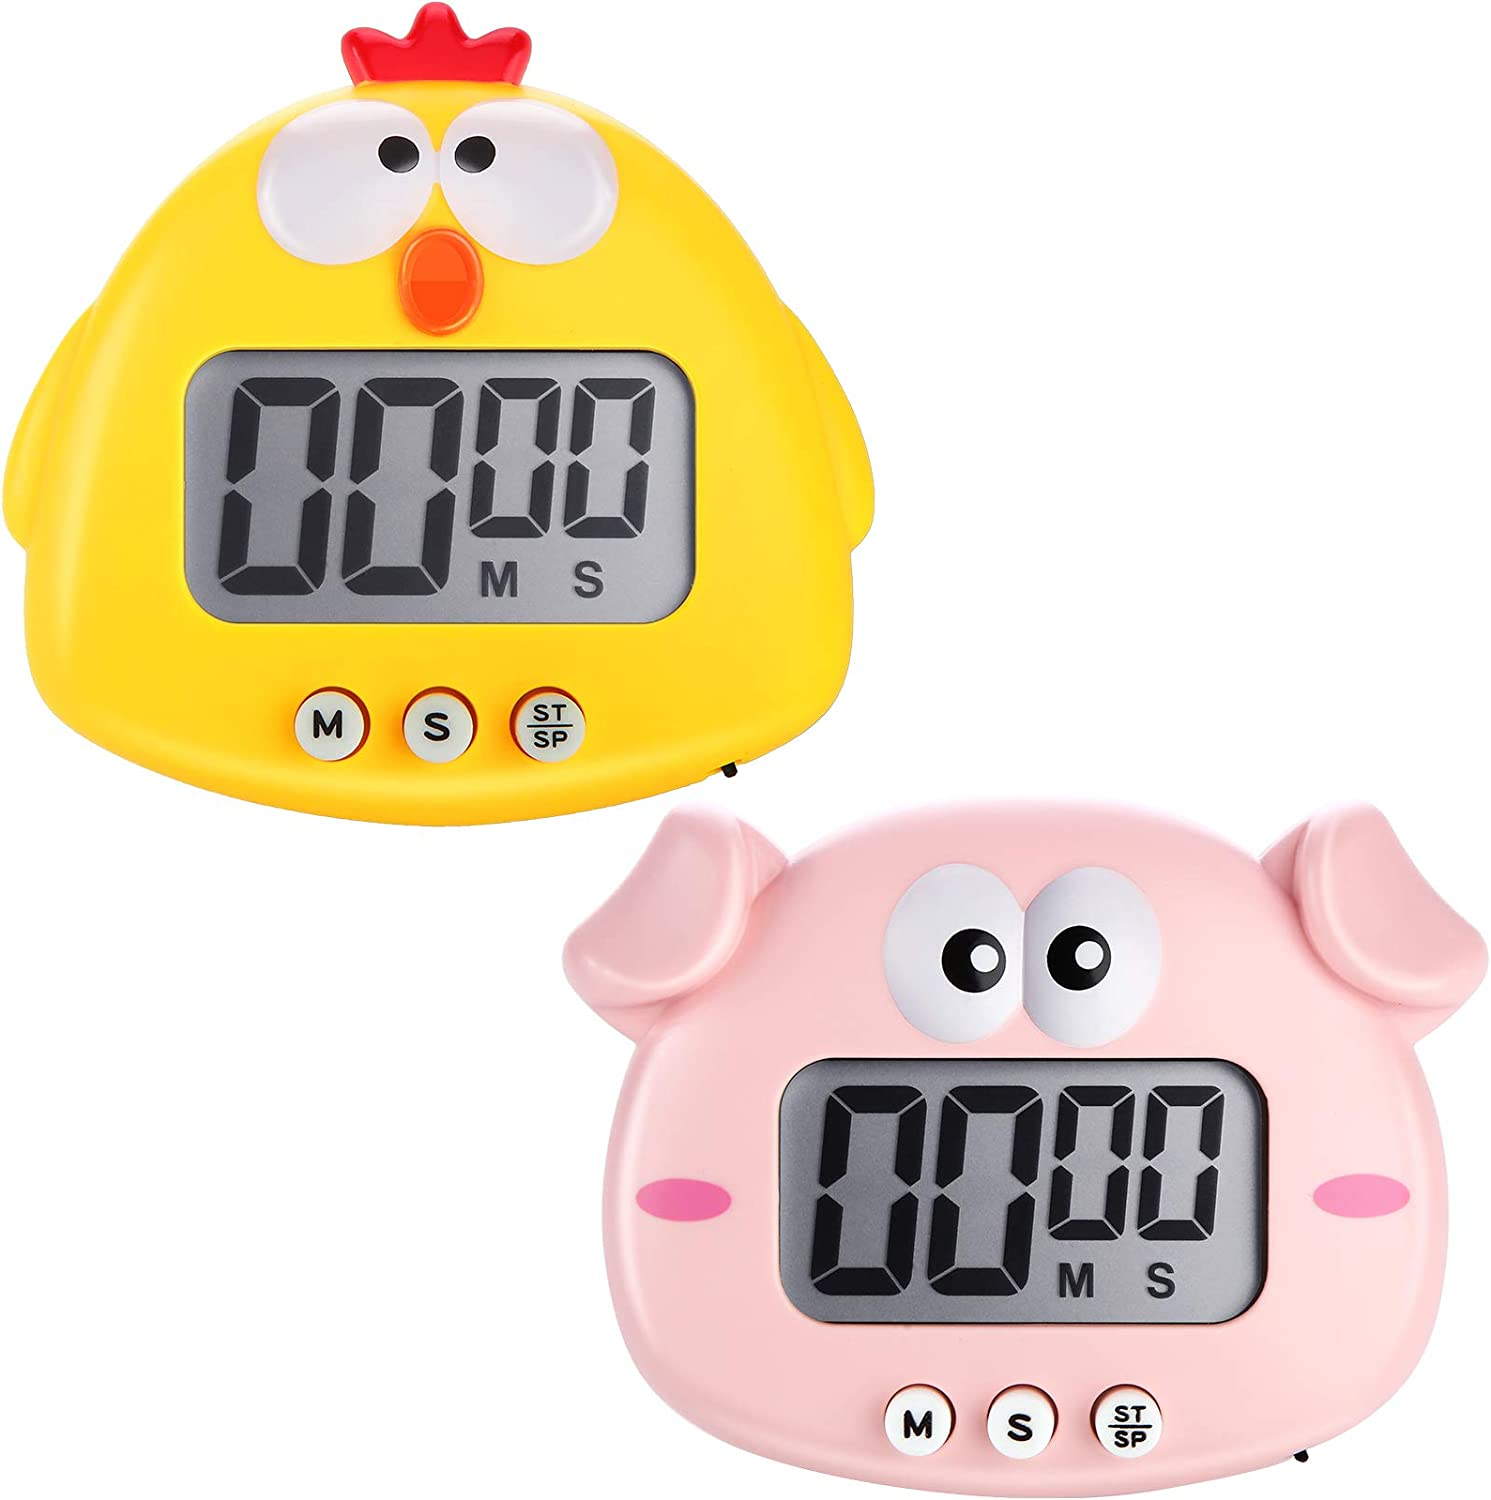 2 Pieces Kids Kitchen Timer Magnetic Animal Digital Countdown Timer Timers LCD Display Cute Cartoon Timer for Cooking